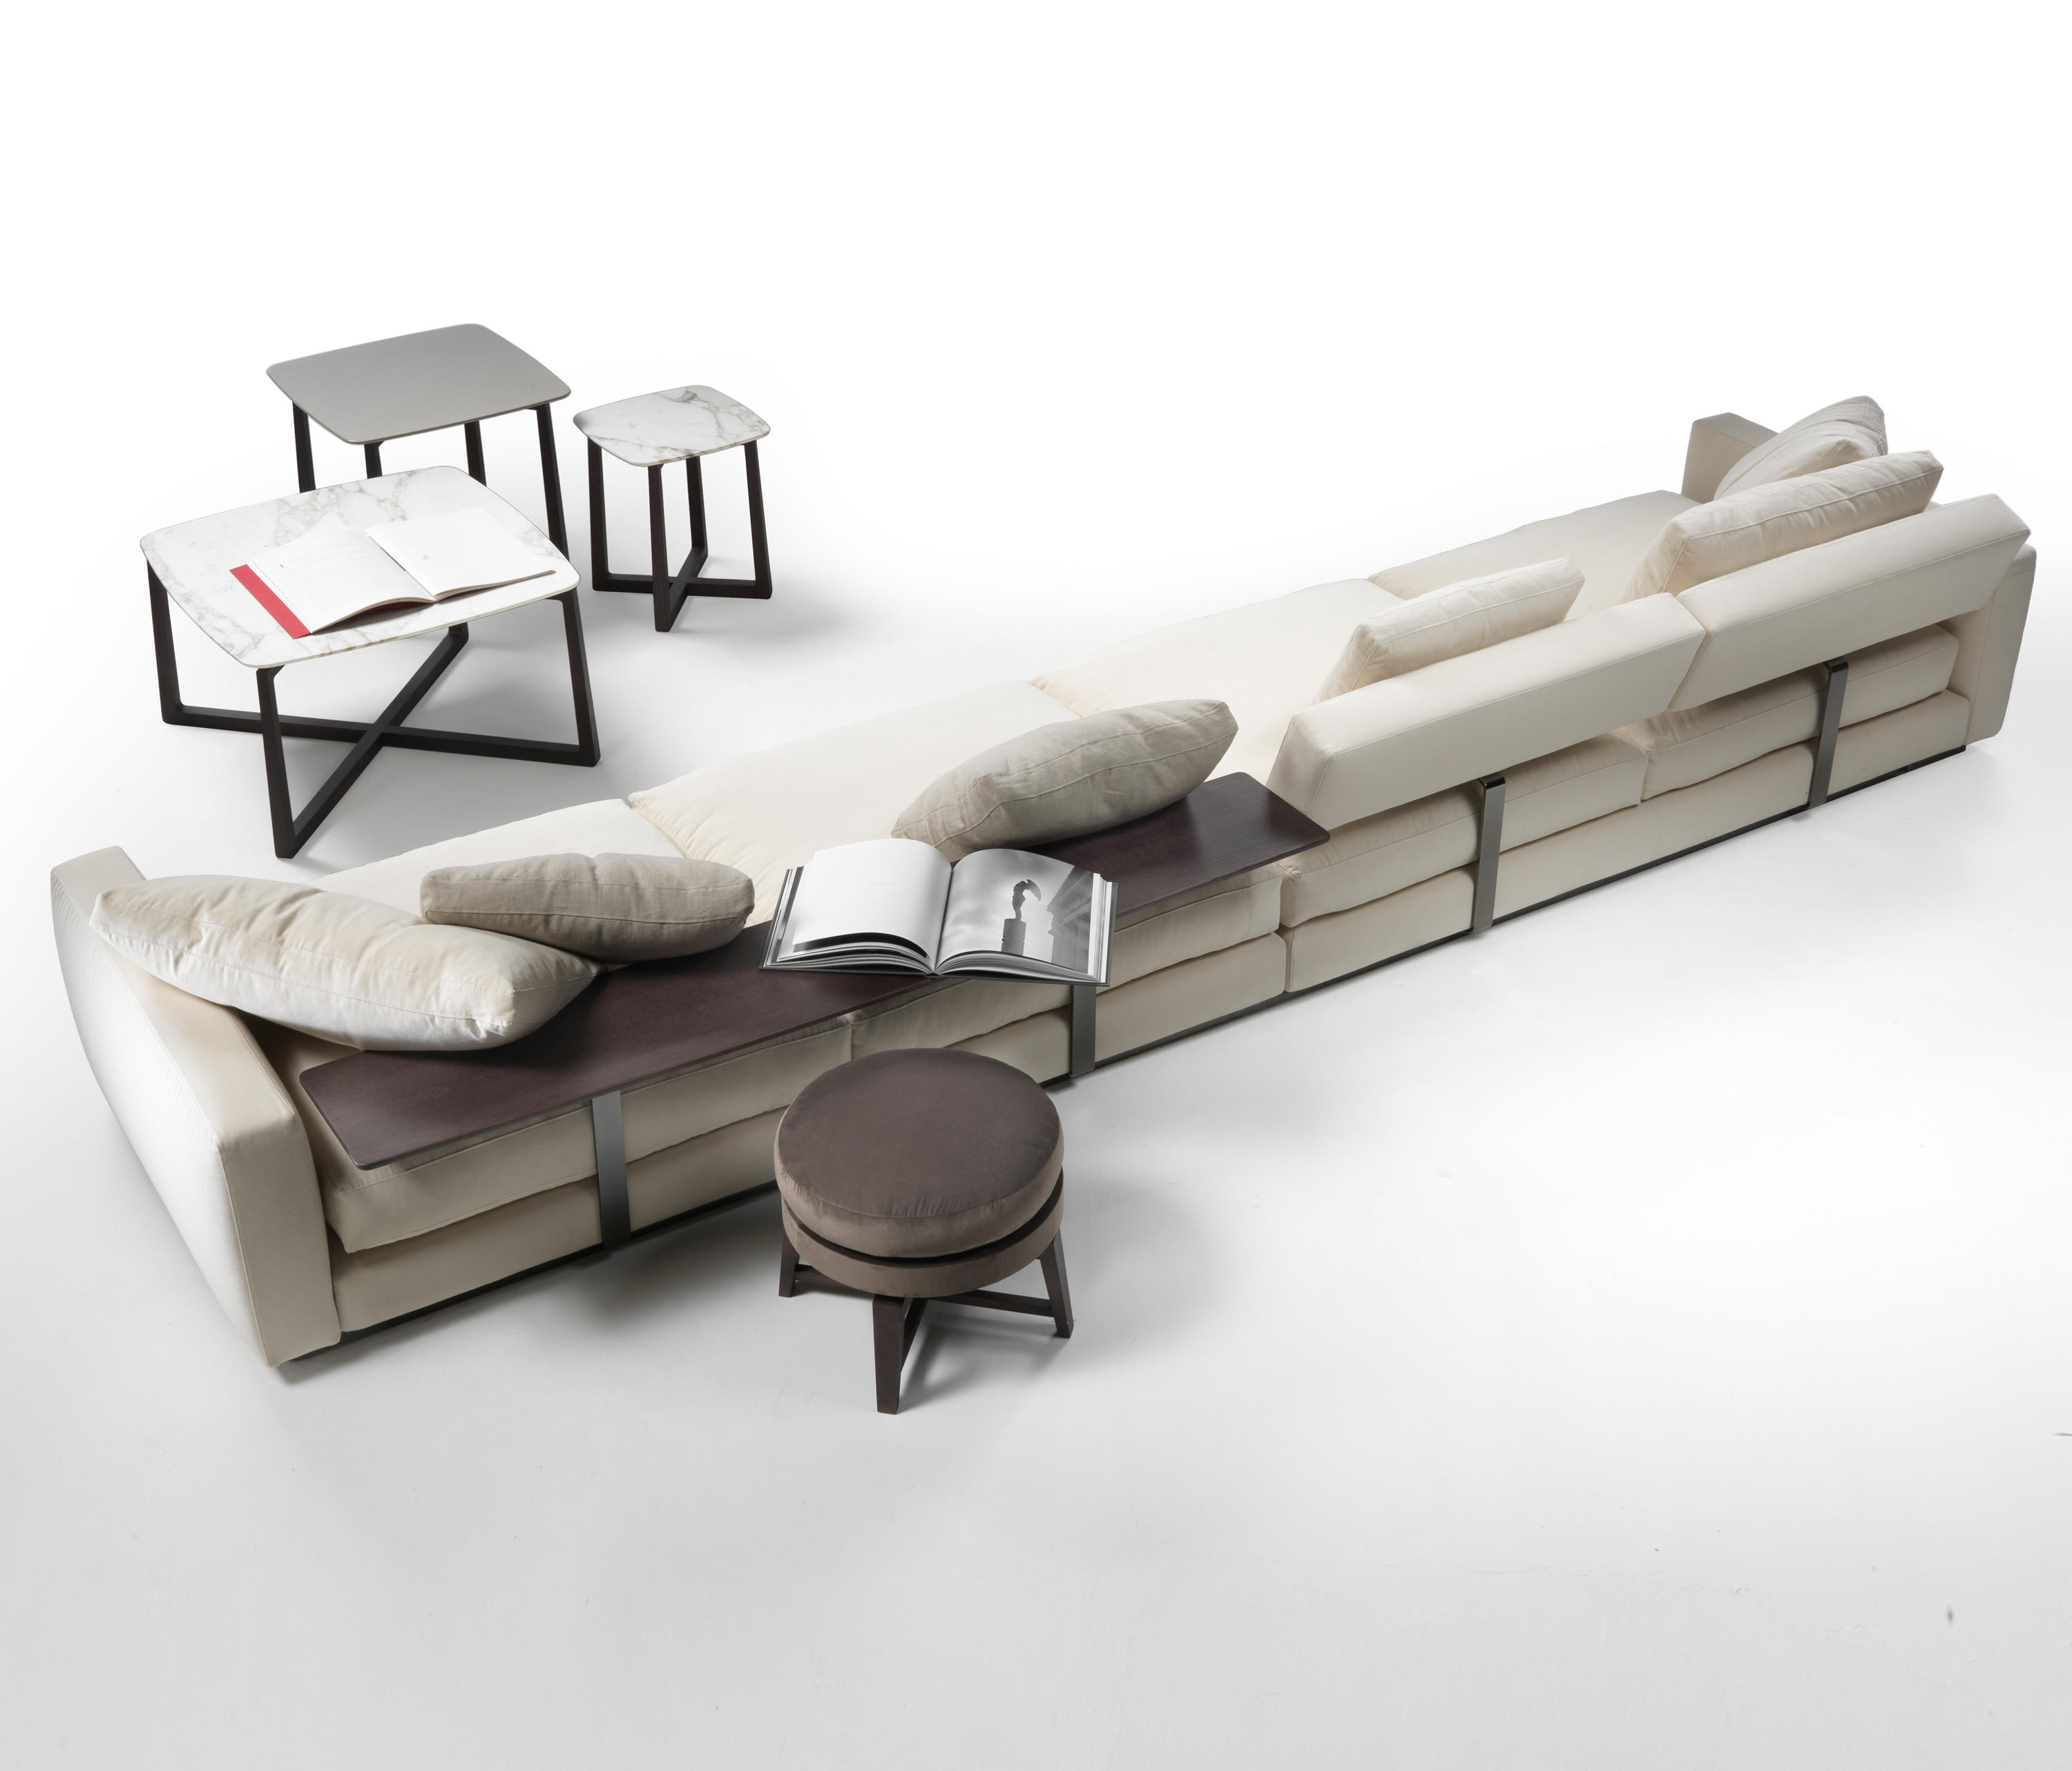 PLEASURE SECTIONAL SOFA Modular seating systems from Flexform